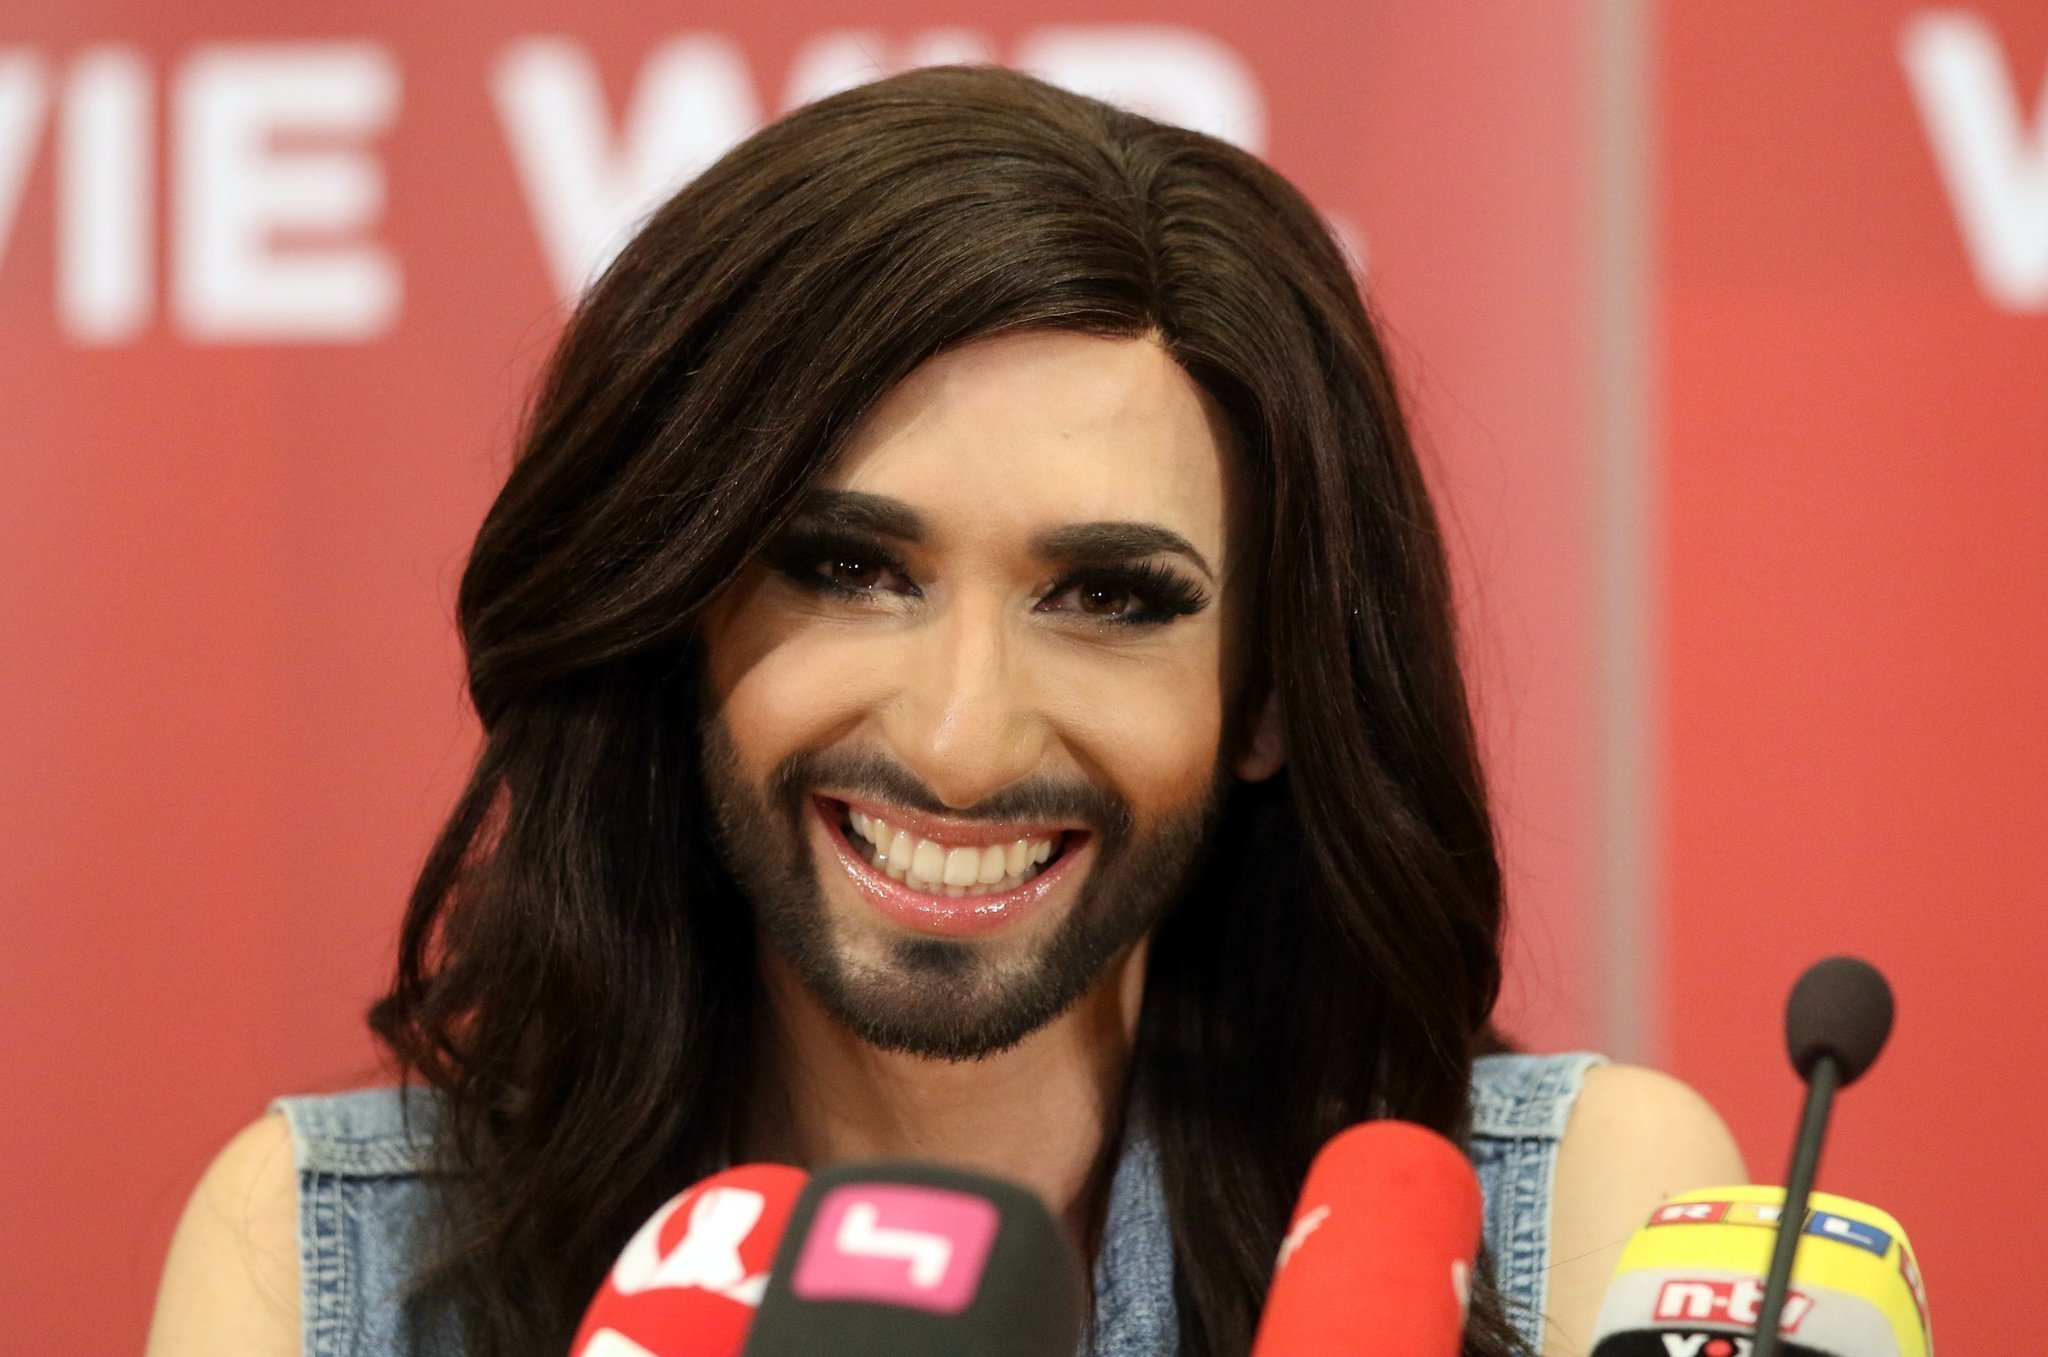 Conchita wurst and dana international in eurovision first star - Wurst S Eurovision Win Shows Pop Still Political The San Diego Union Tribune